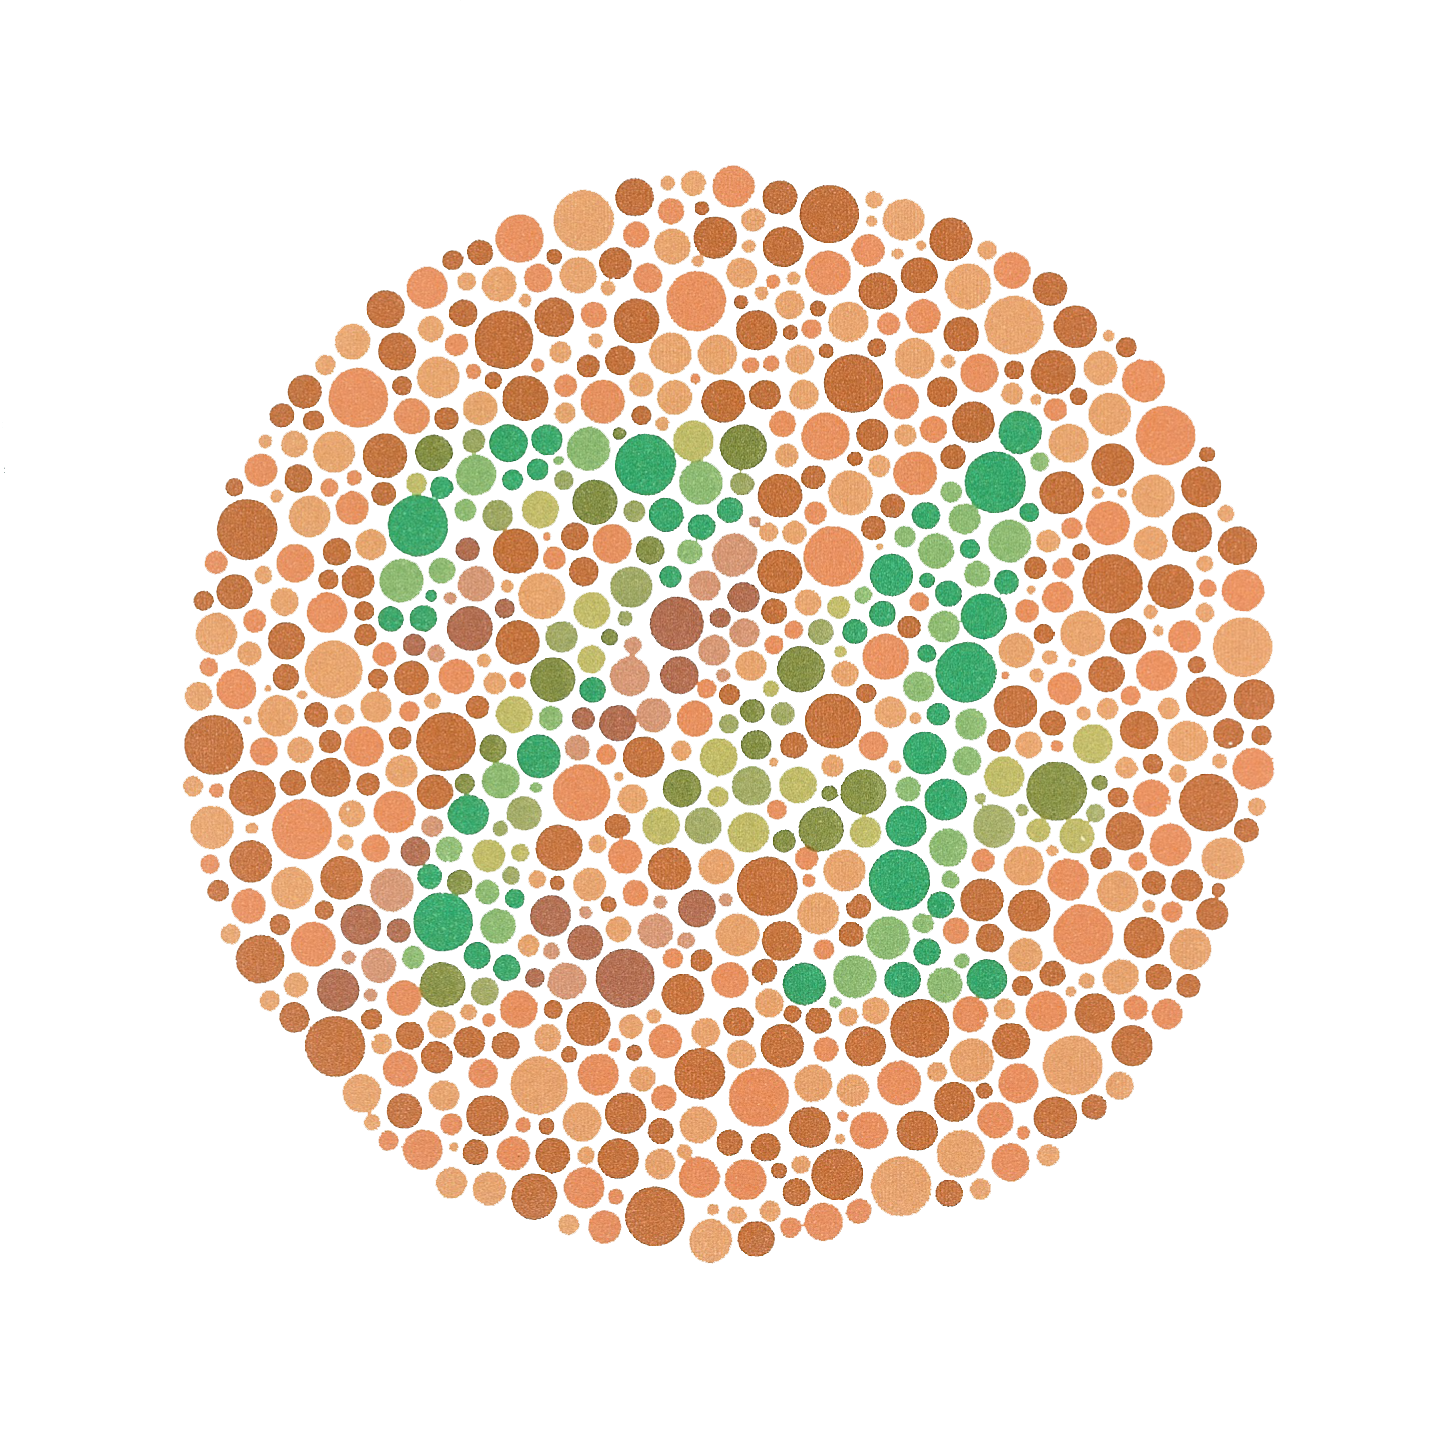 An example of an Ishihara color test plate. The number 74 should be clearly visible if you have normal color vision.